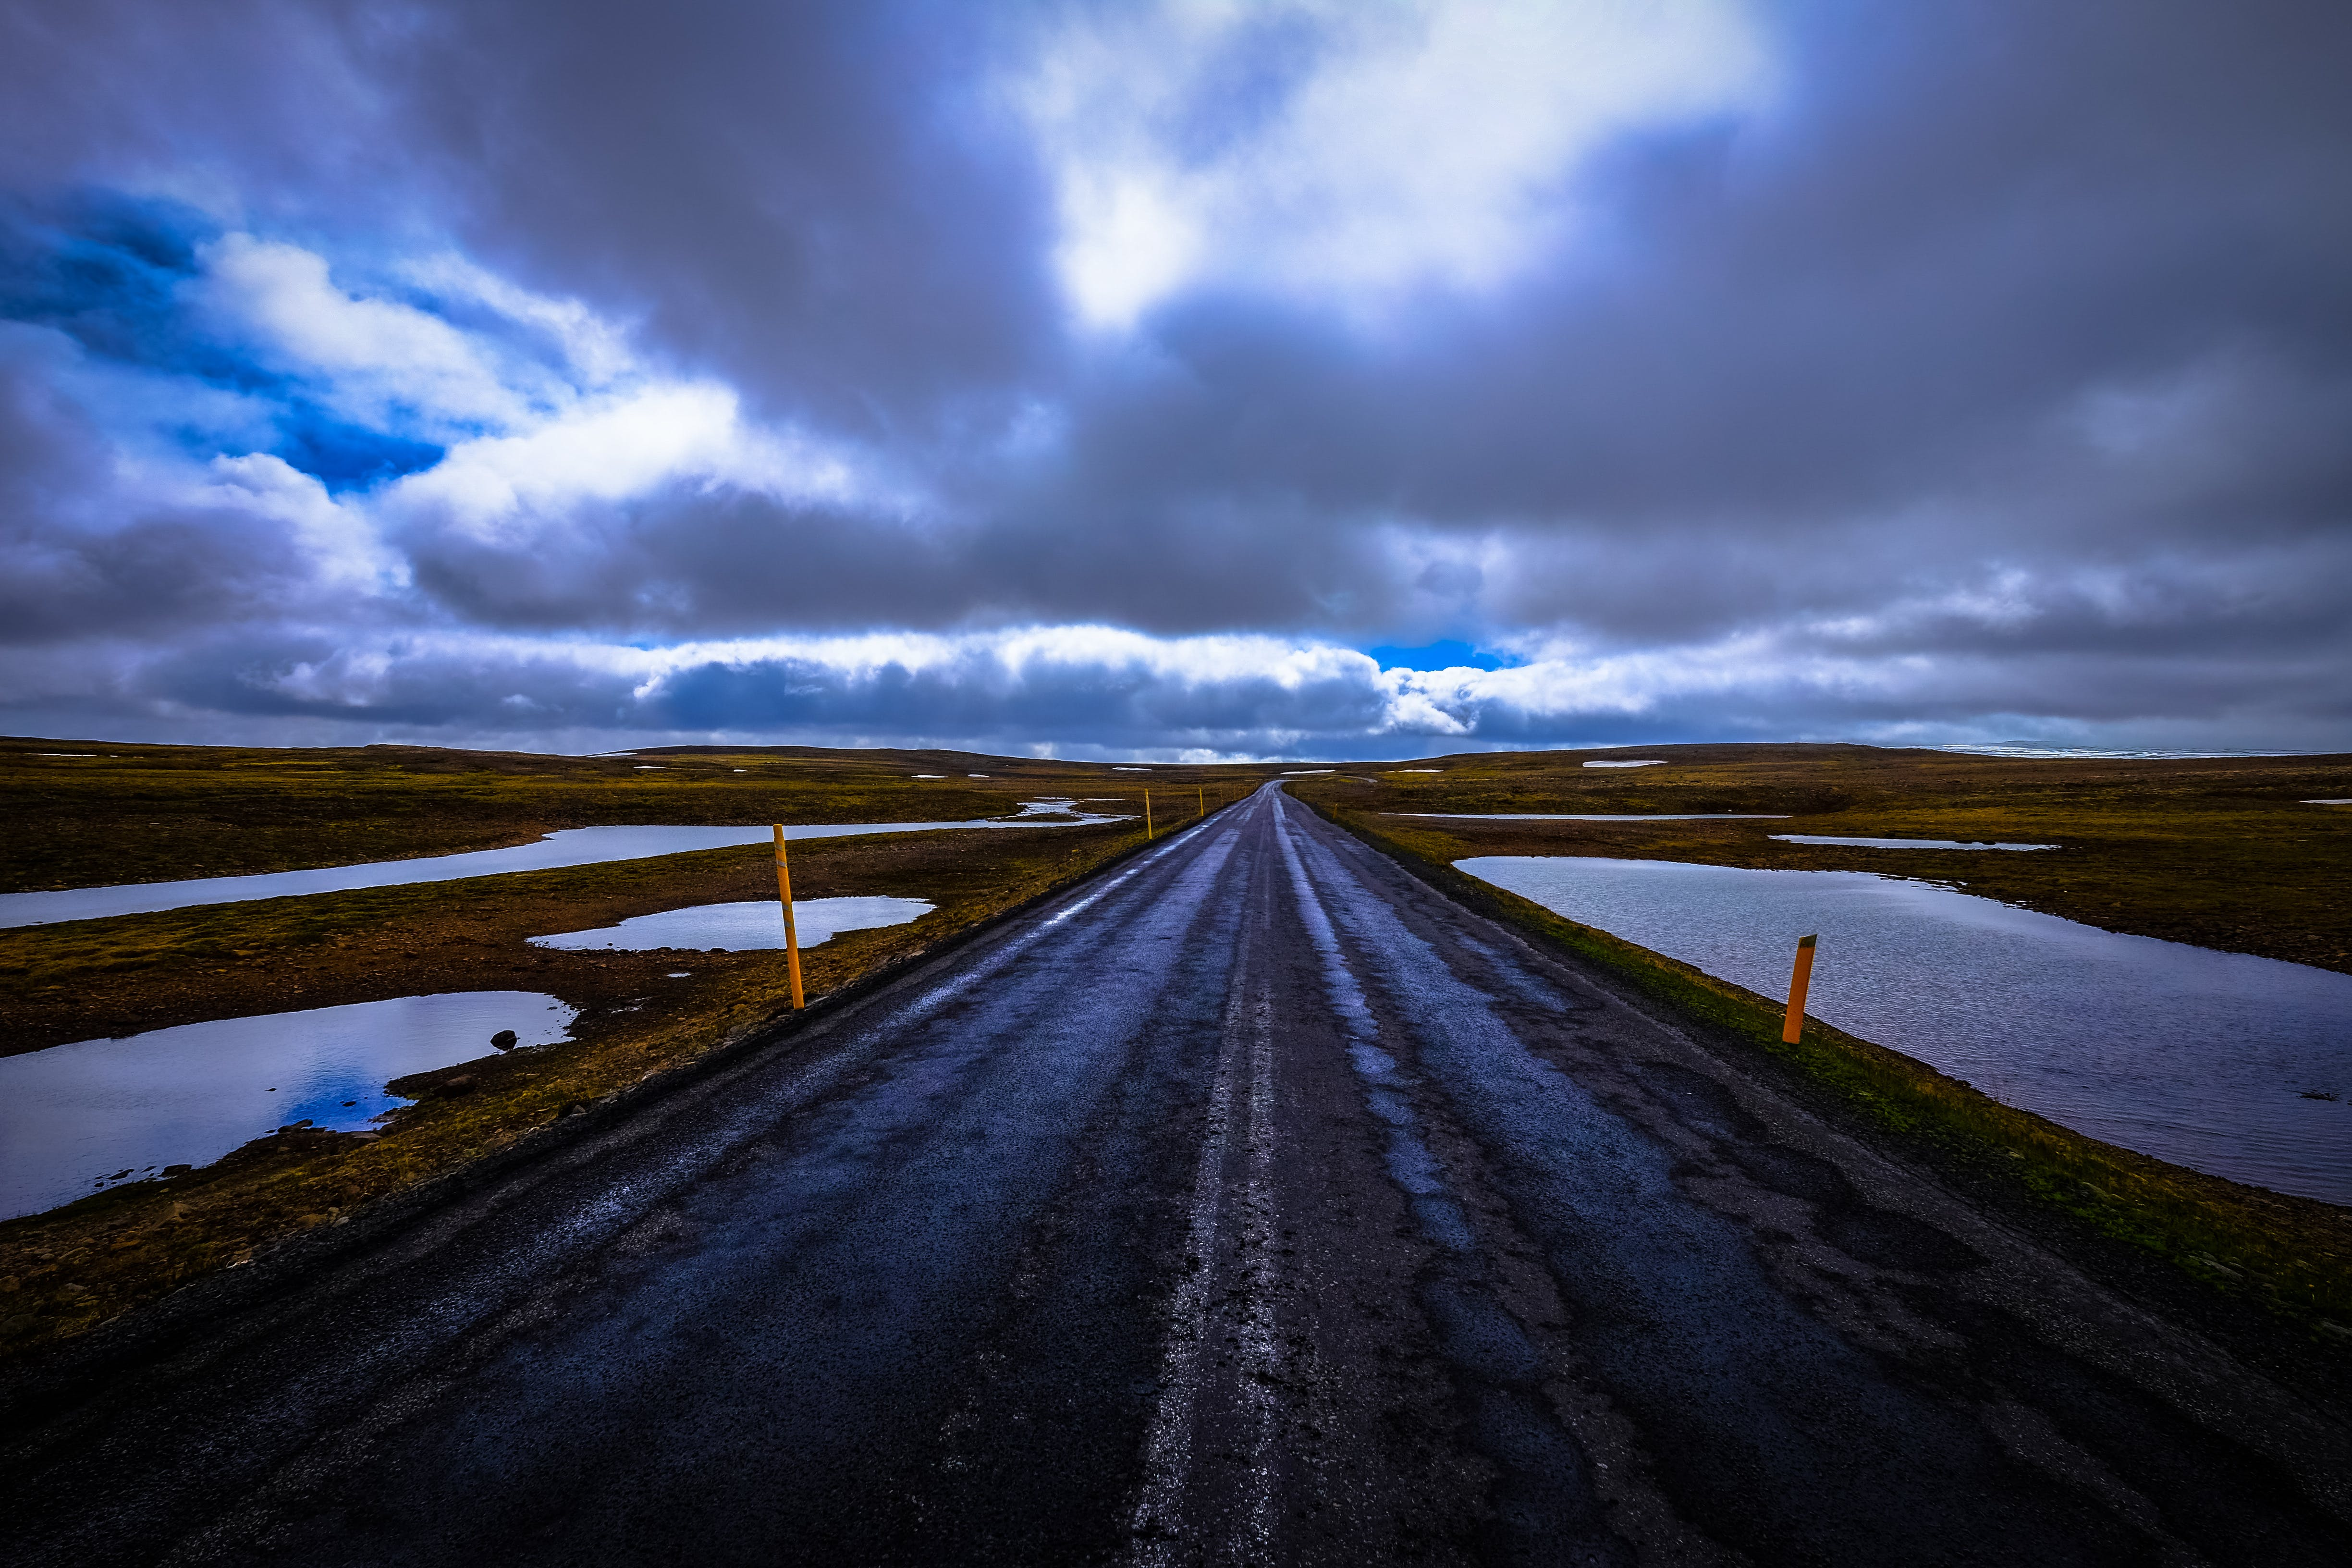 Road Surrounded With Body of Water